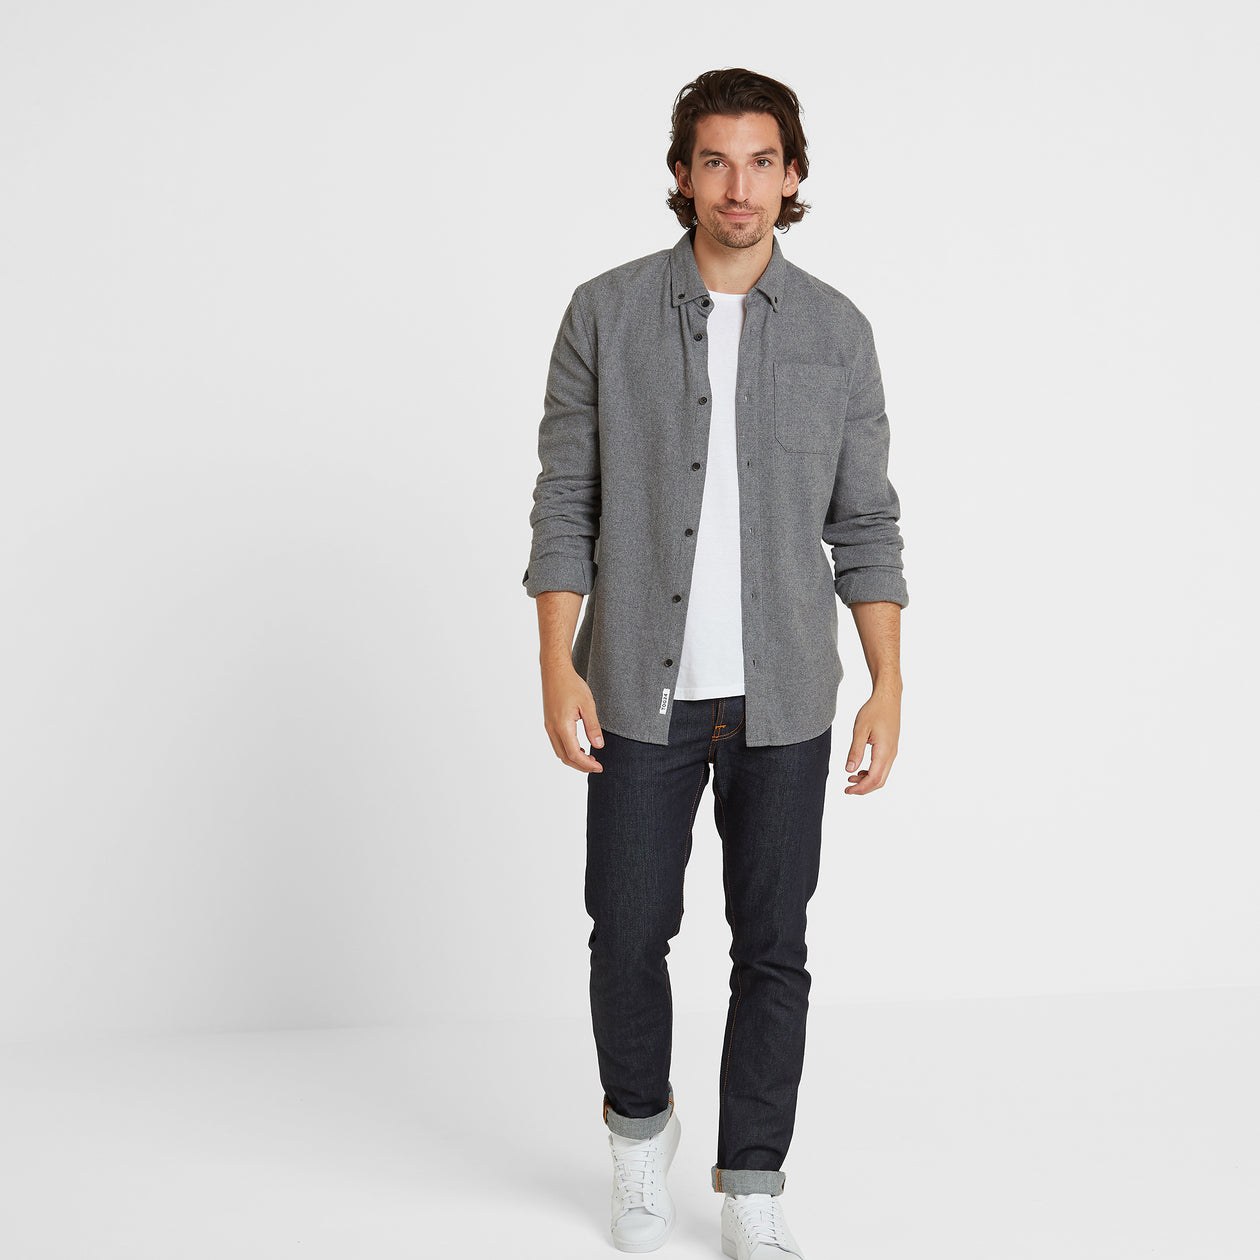 Winston Mens Long Sleeve Plain Marl Shirt - Grey Marl image 4